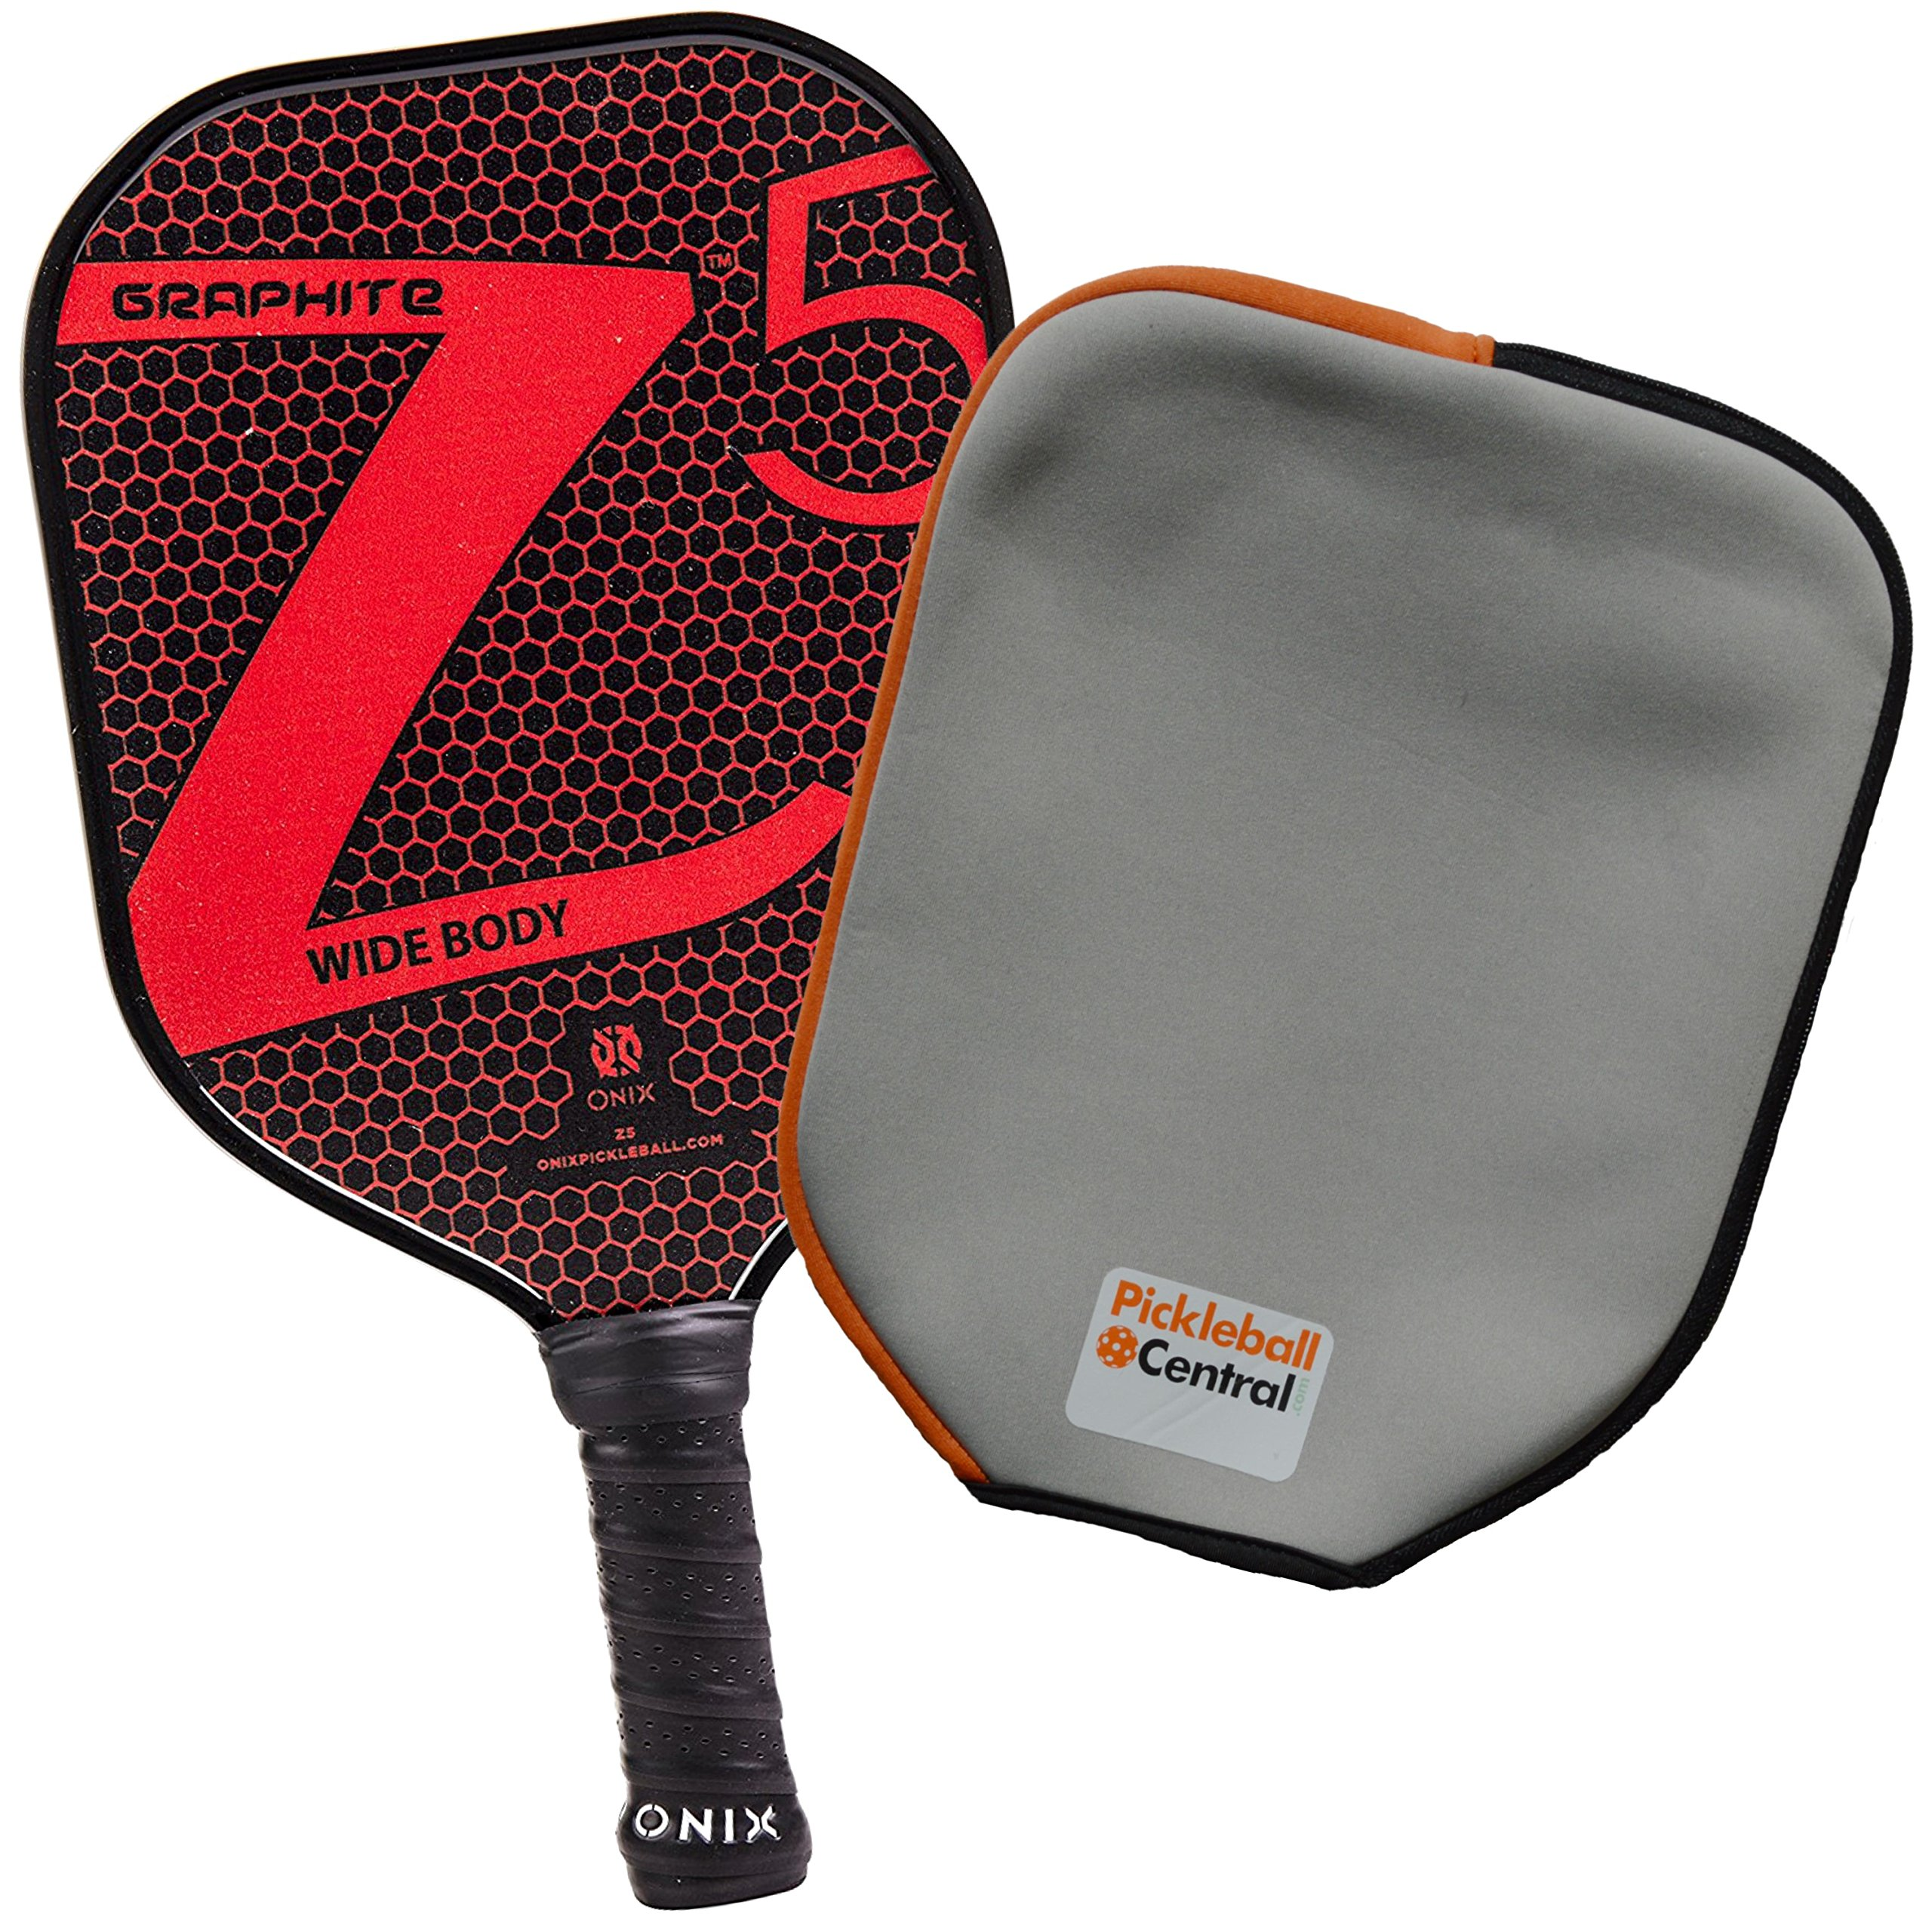 Onix Z5 Graphite Pickleball Paddle and Paddle Cover (Red) by Onix